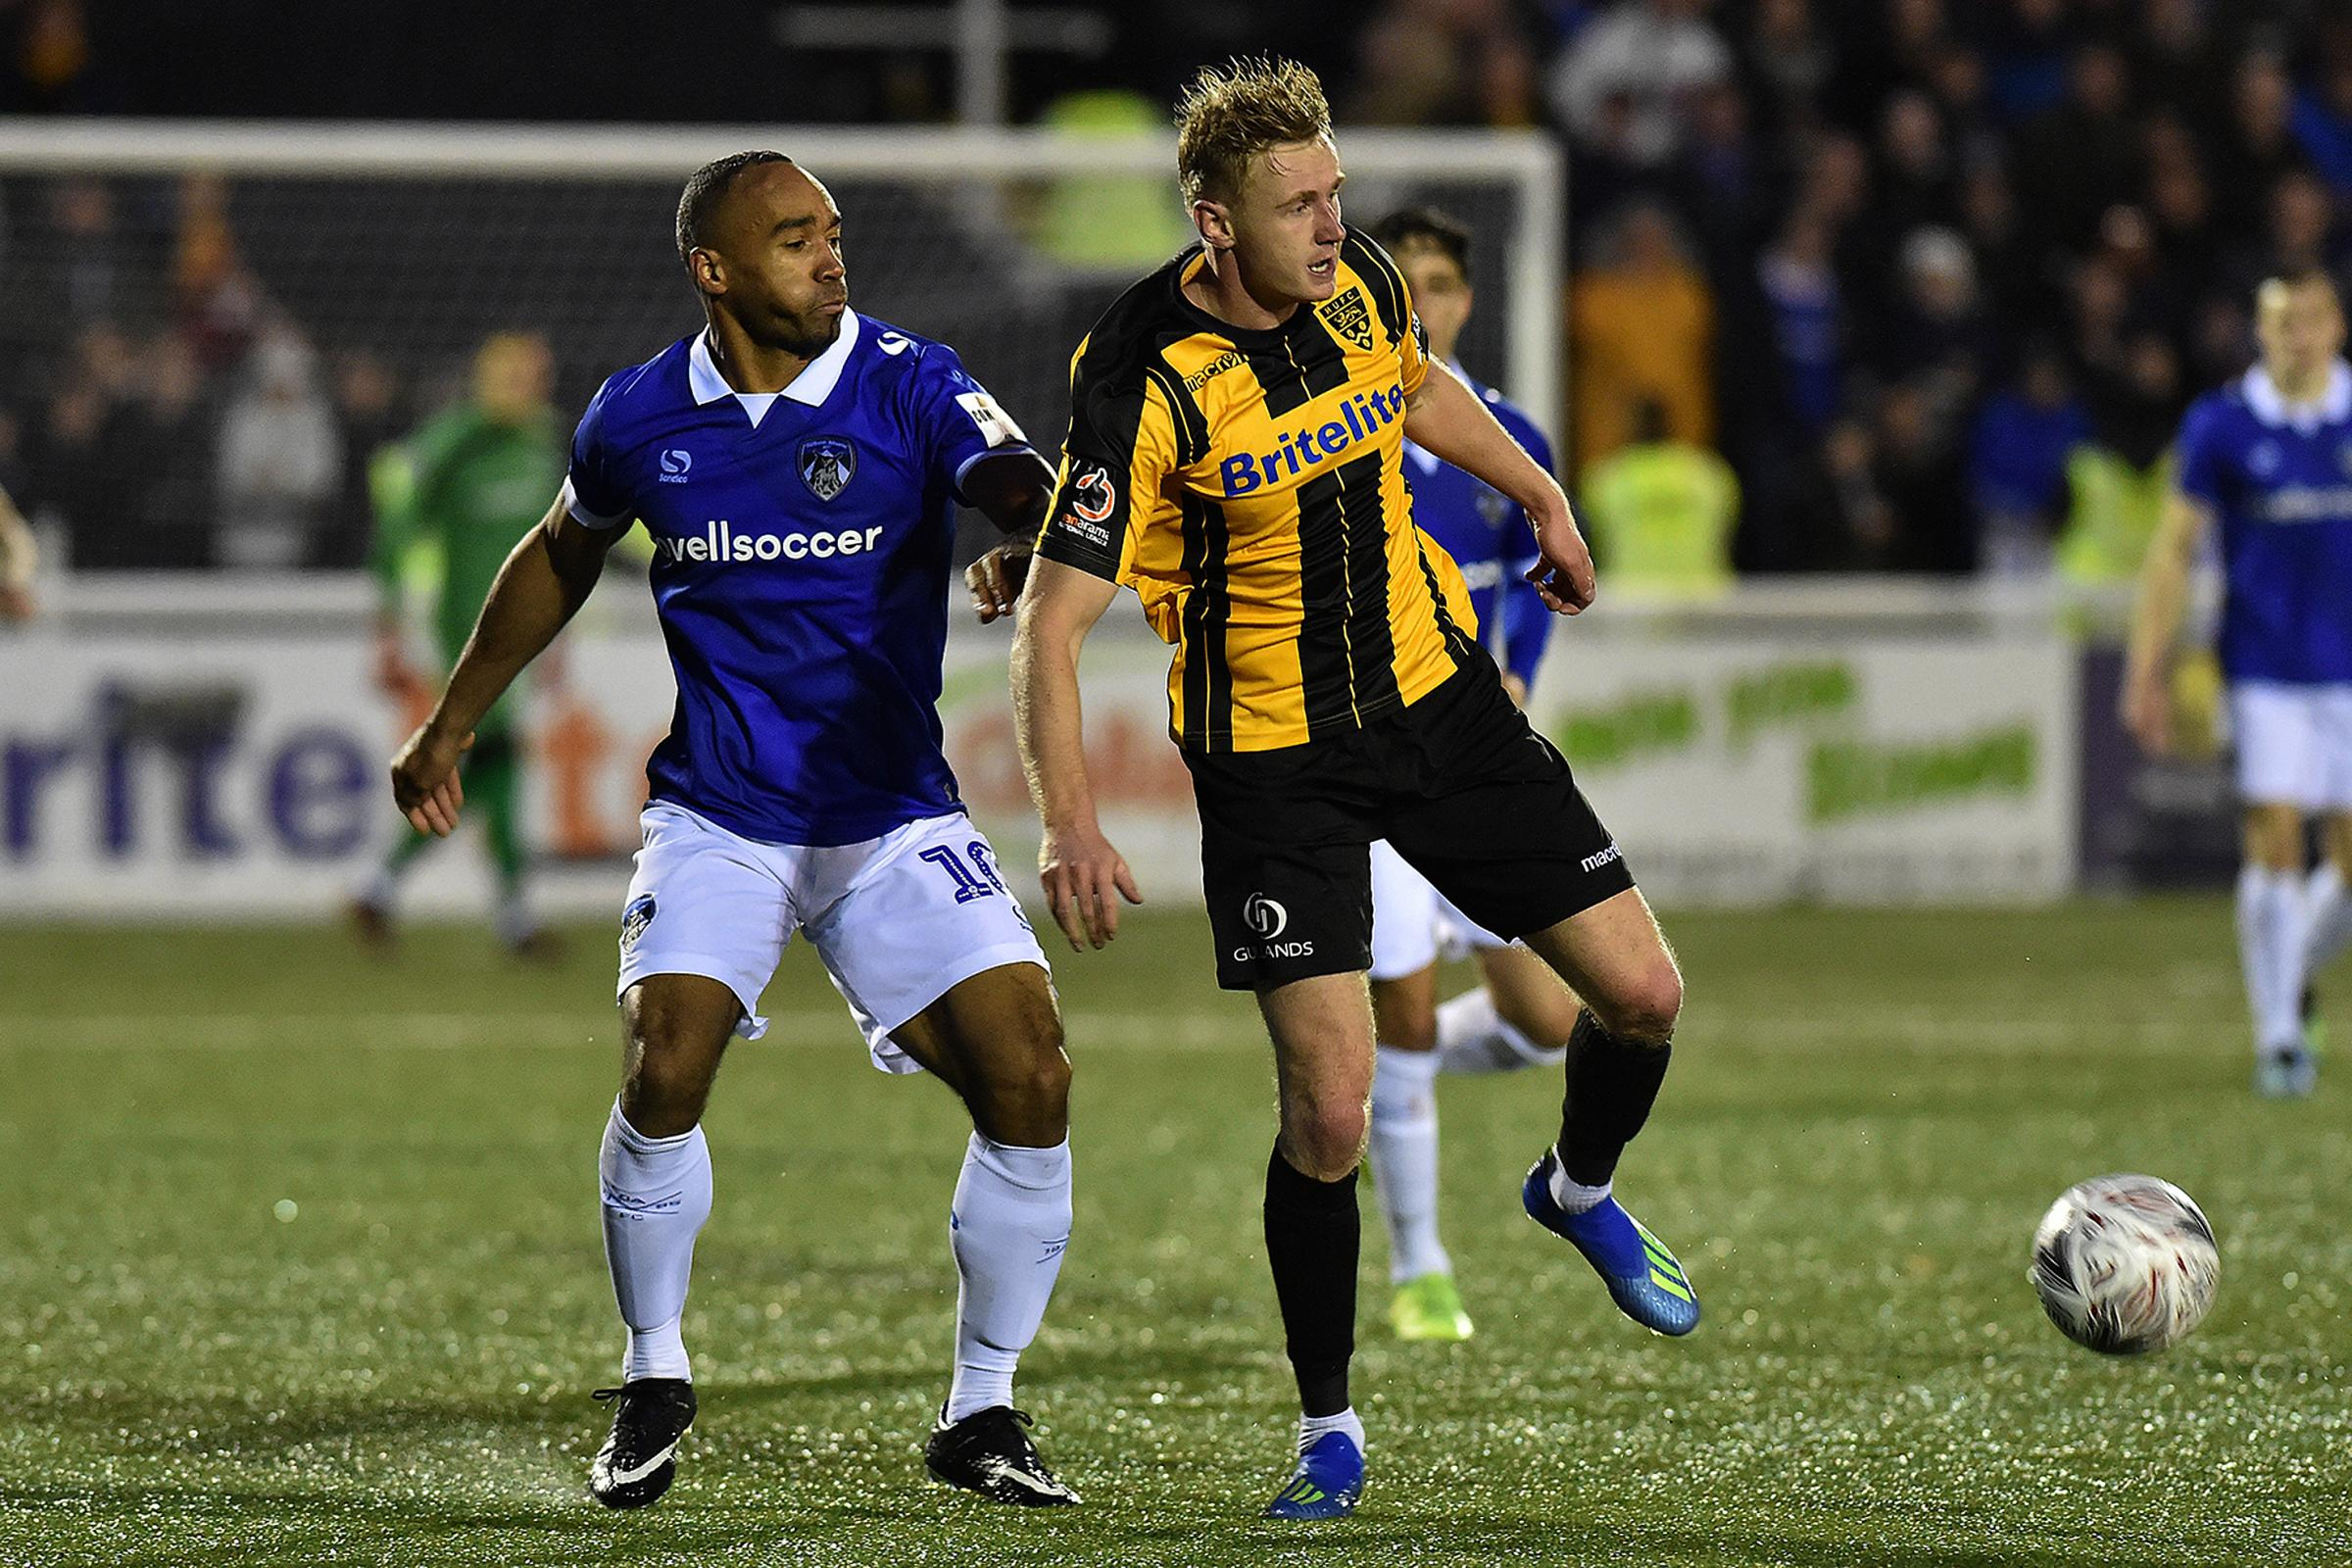 Maidstone United's George McClennan and Oldham's Chris O'Grady in action during the FA Cup 2nd round match between Maidstone United  and Oldham Athletic at the Gallagher Stadium, Maidstone on Saturday 1st December 2018. (Credit: Eddie Garvey).